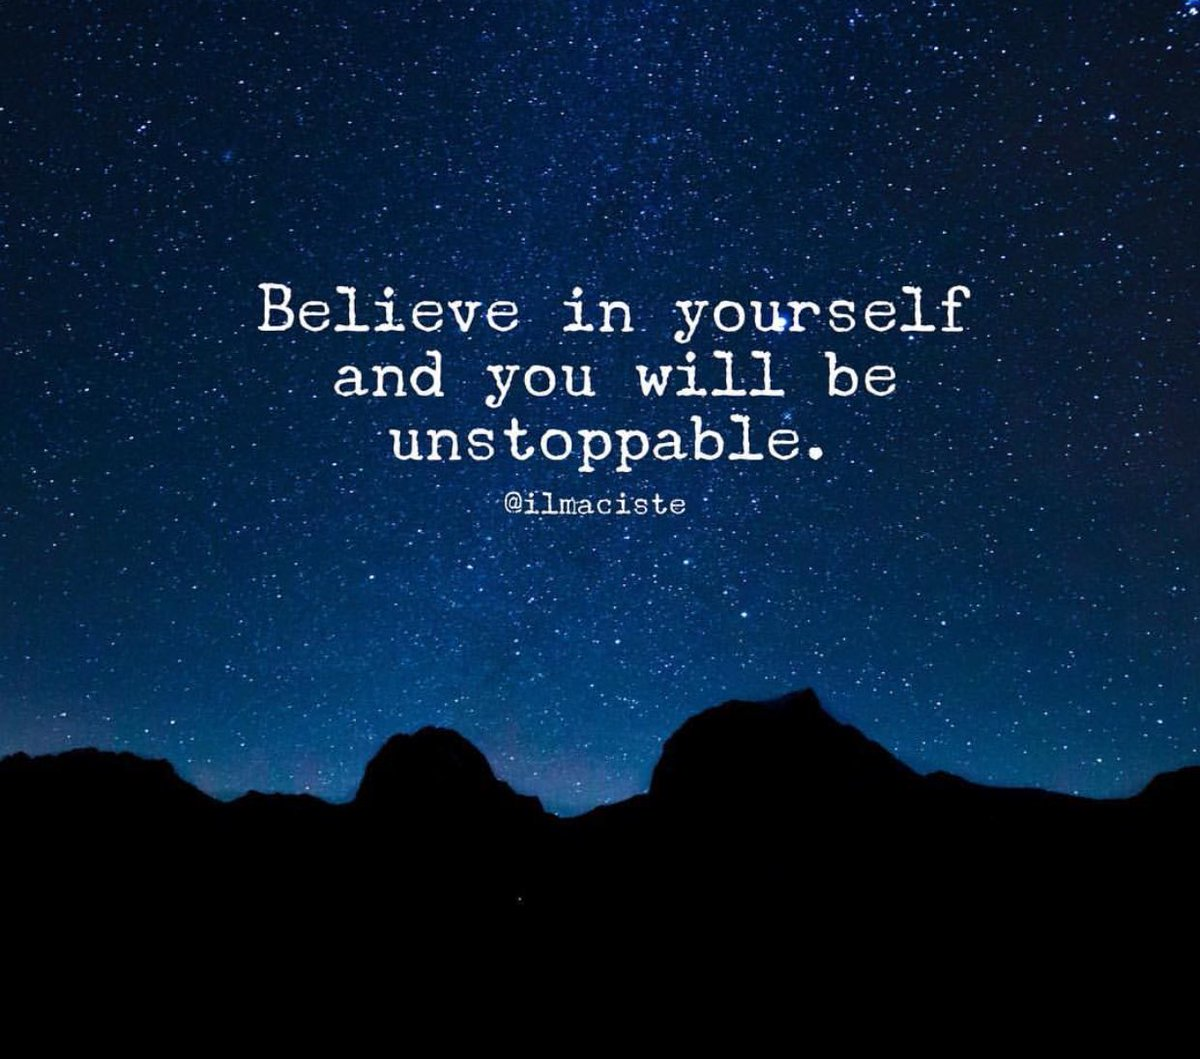 Believe in yourself &amp; YOU will be unstoppable. #motivation #spdc #SuccessTRAIN @BruceVH @DavidKWilliams @Audio212<br>http://pic.twitter.com/80xL0qZB3y